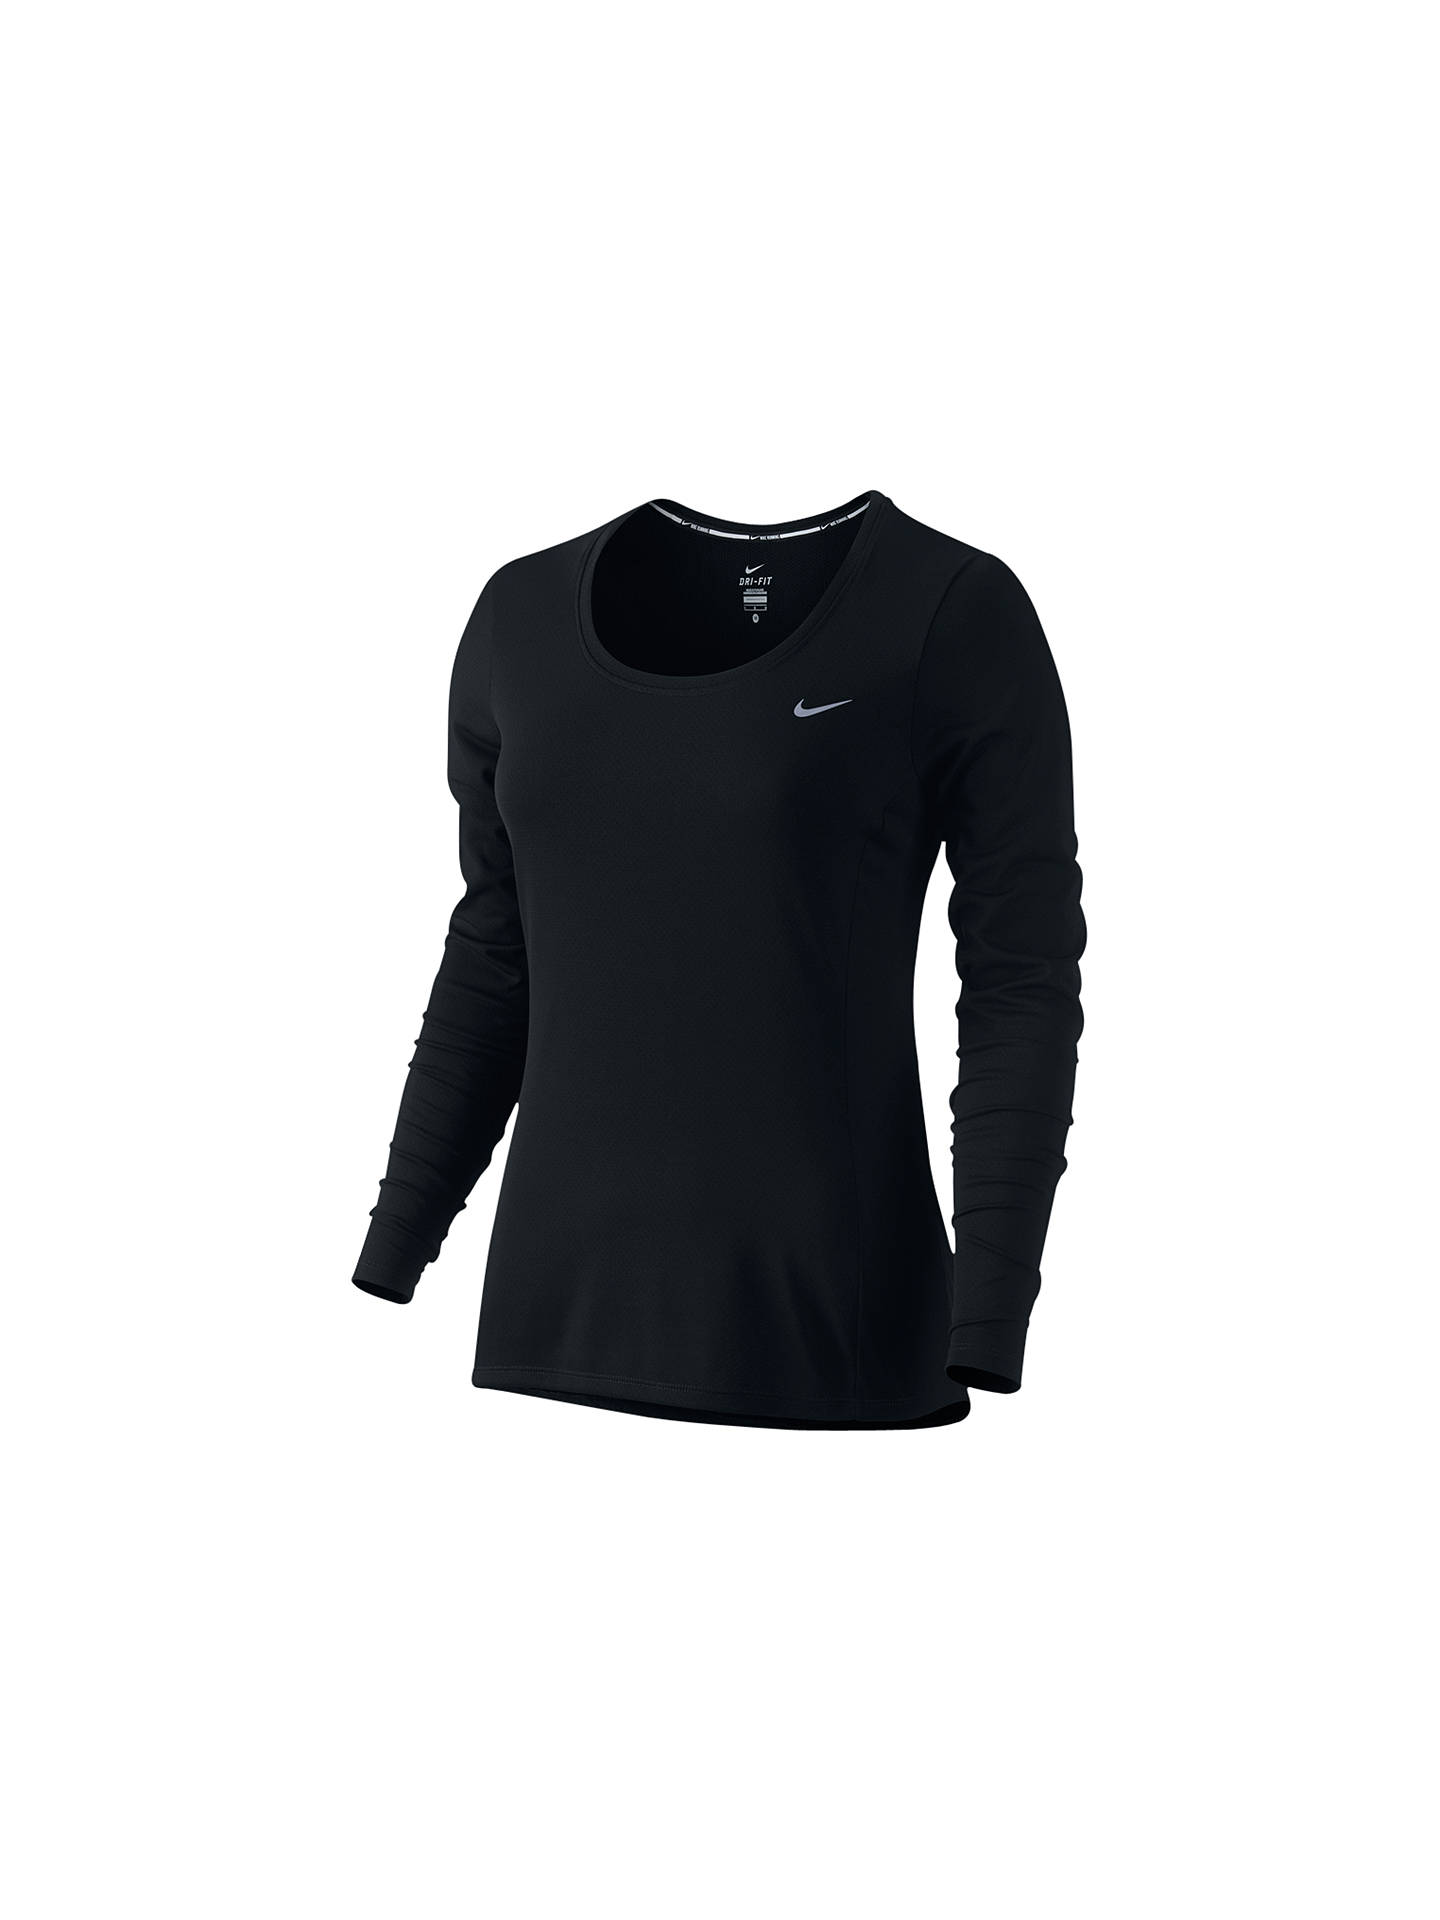 64b9d2b7b Buy Nike Dri-FIT Contour Long Sleeve Running Top, Black, XS Online at ...